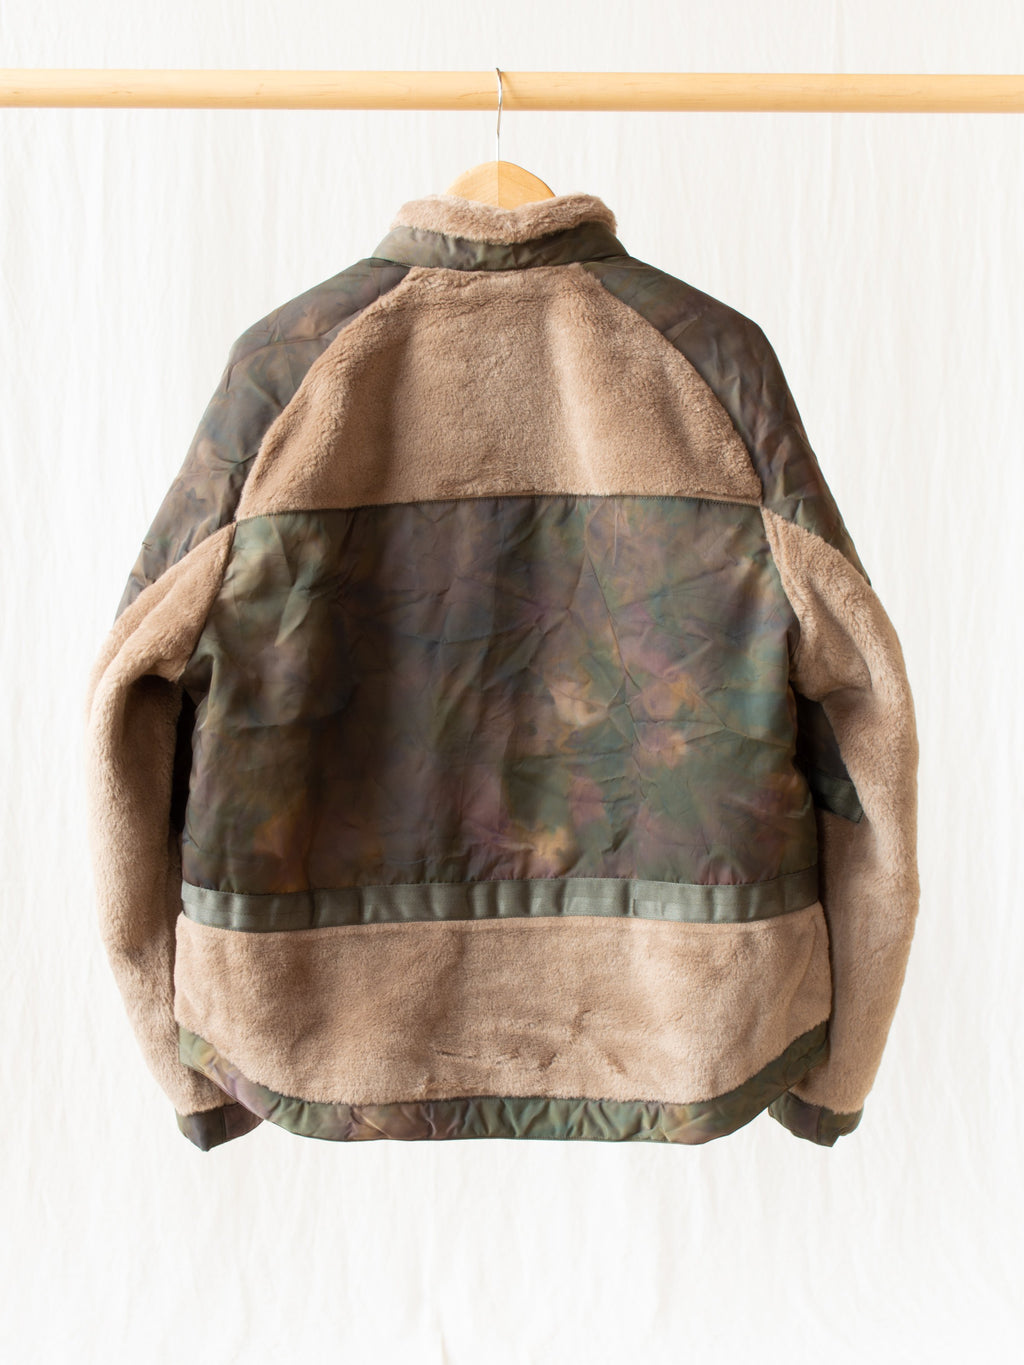 Namu Shop - Eastlogue Shearing Flight Jumper - Olive Stain